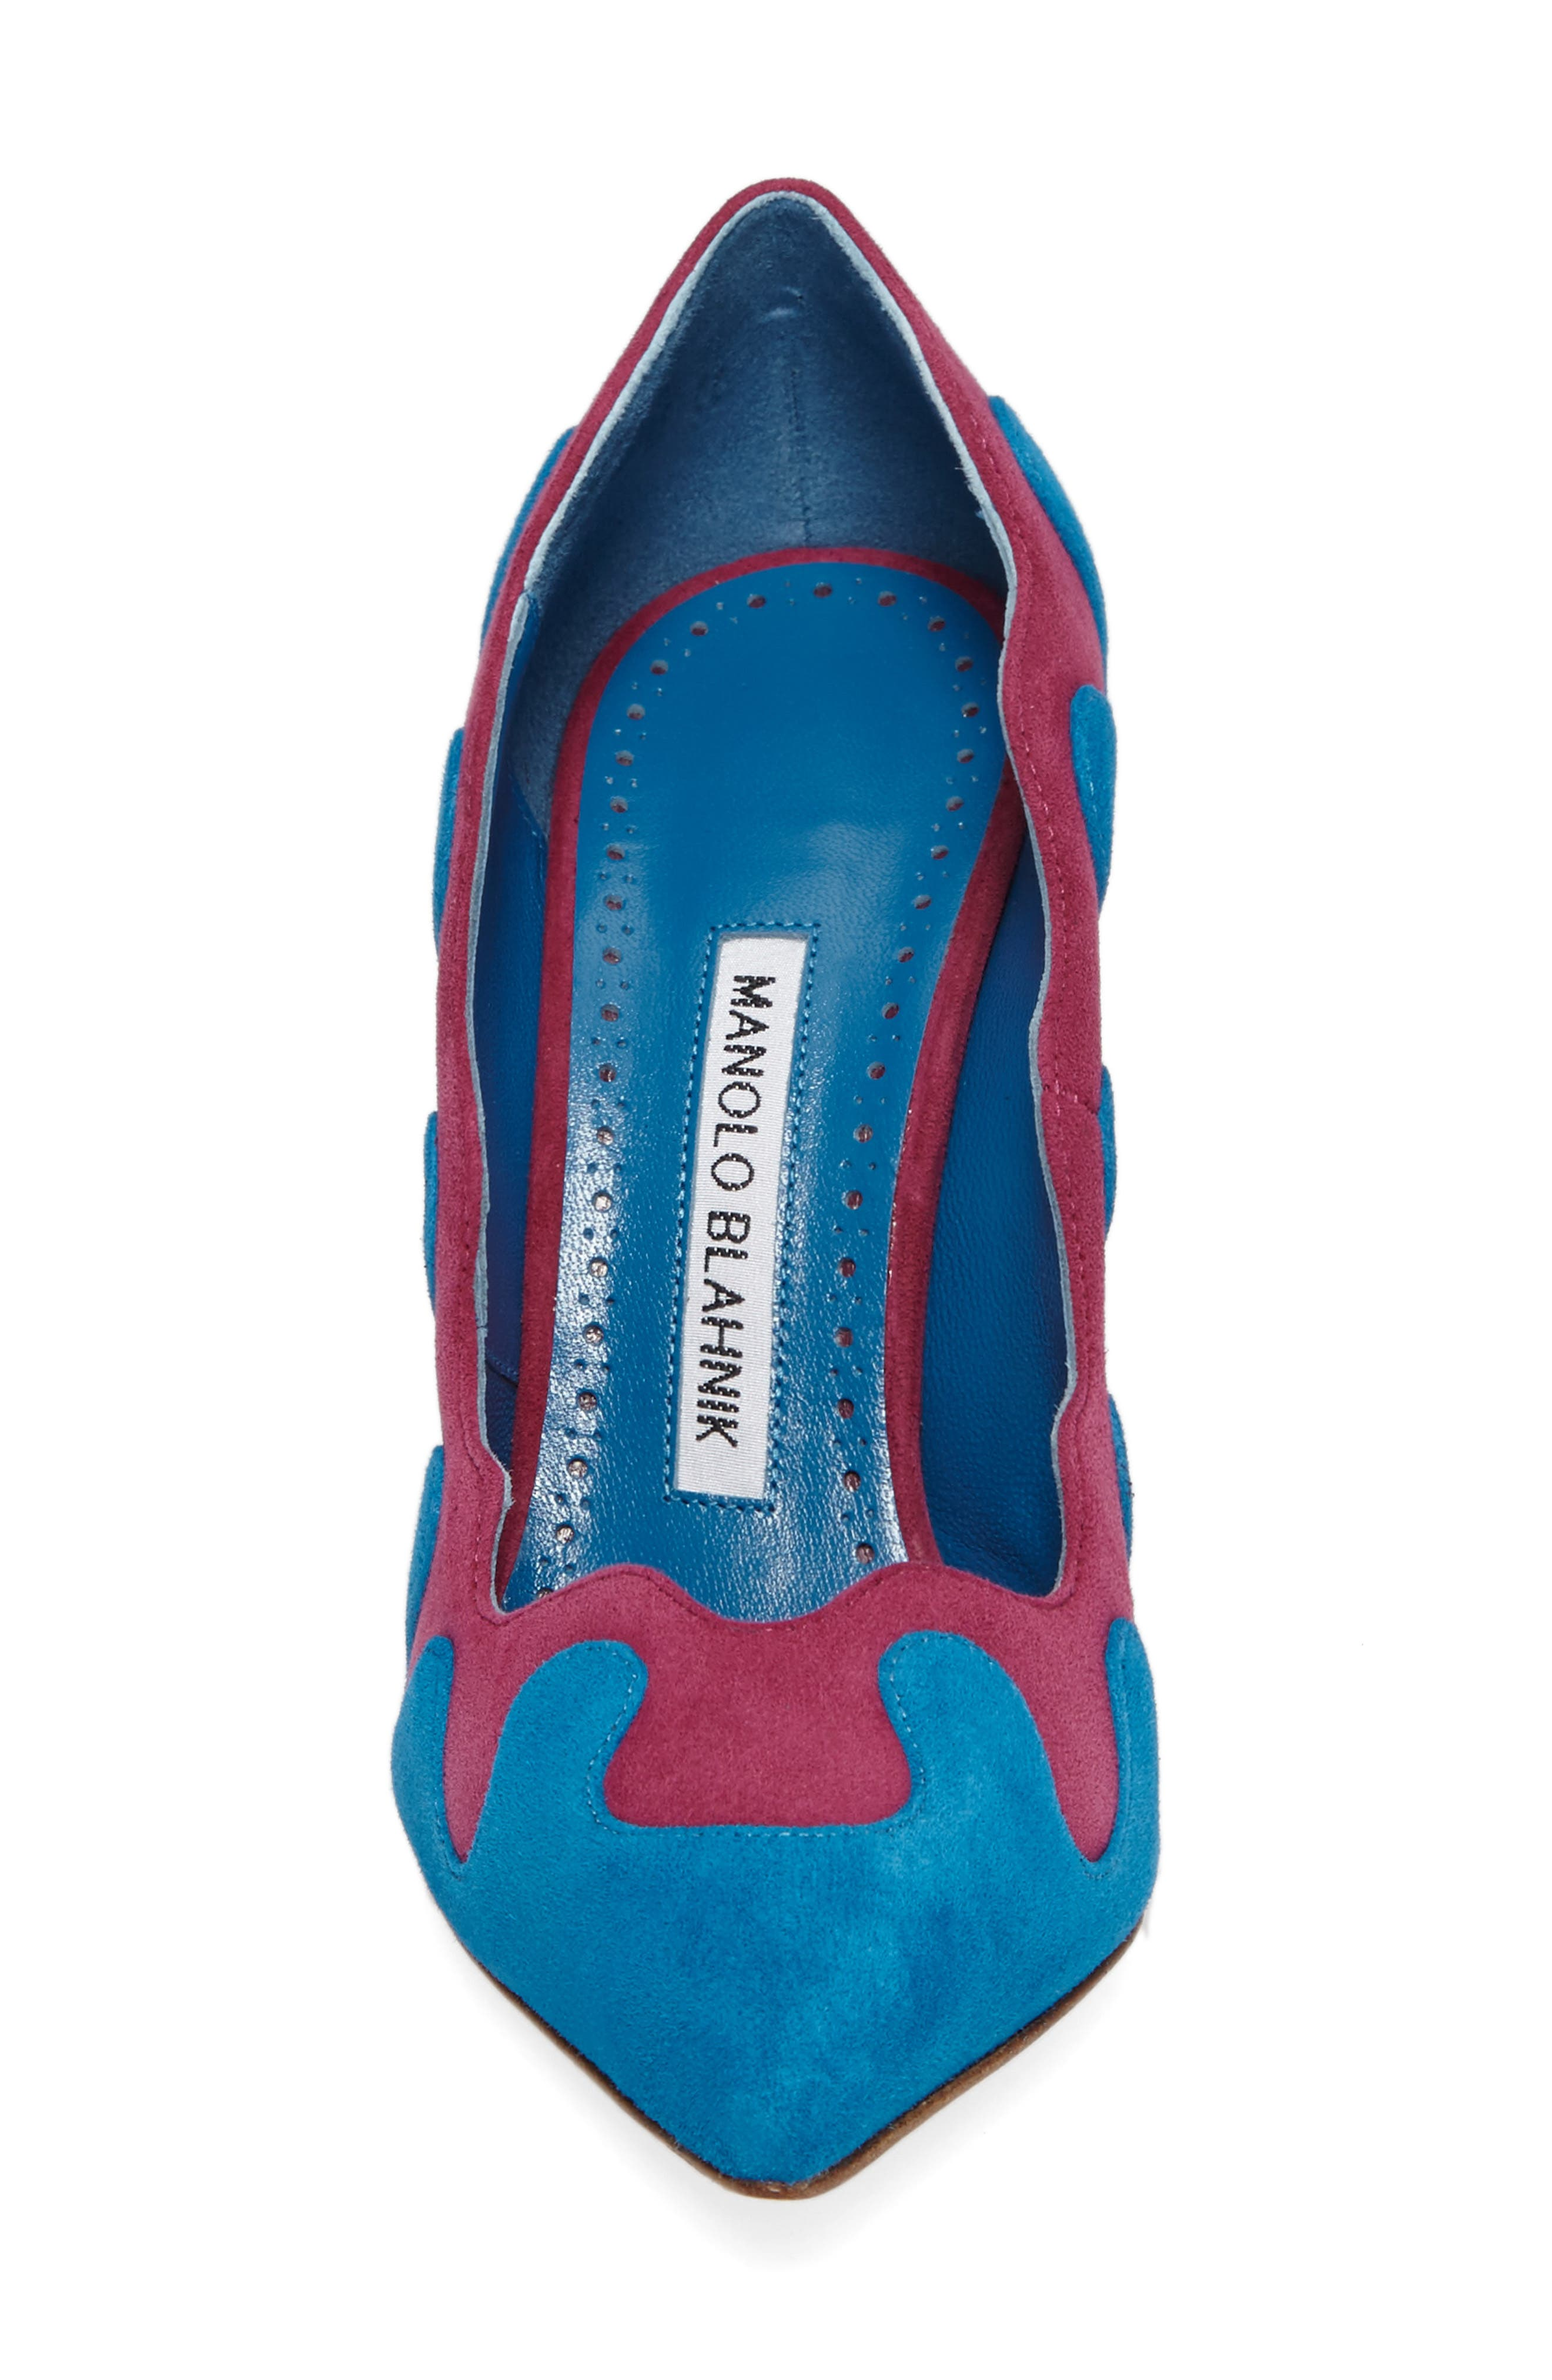 Ulderica Pointy Toe Pump,                             Alternate thumbnail 5, color,                             Turqouise Suede